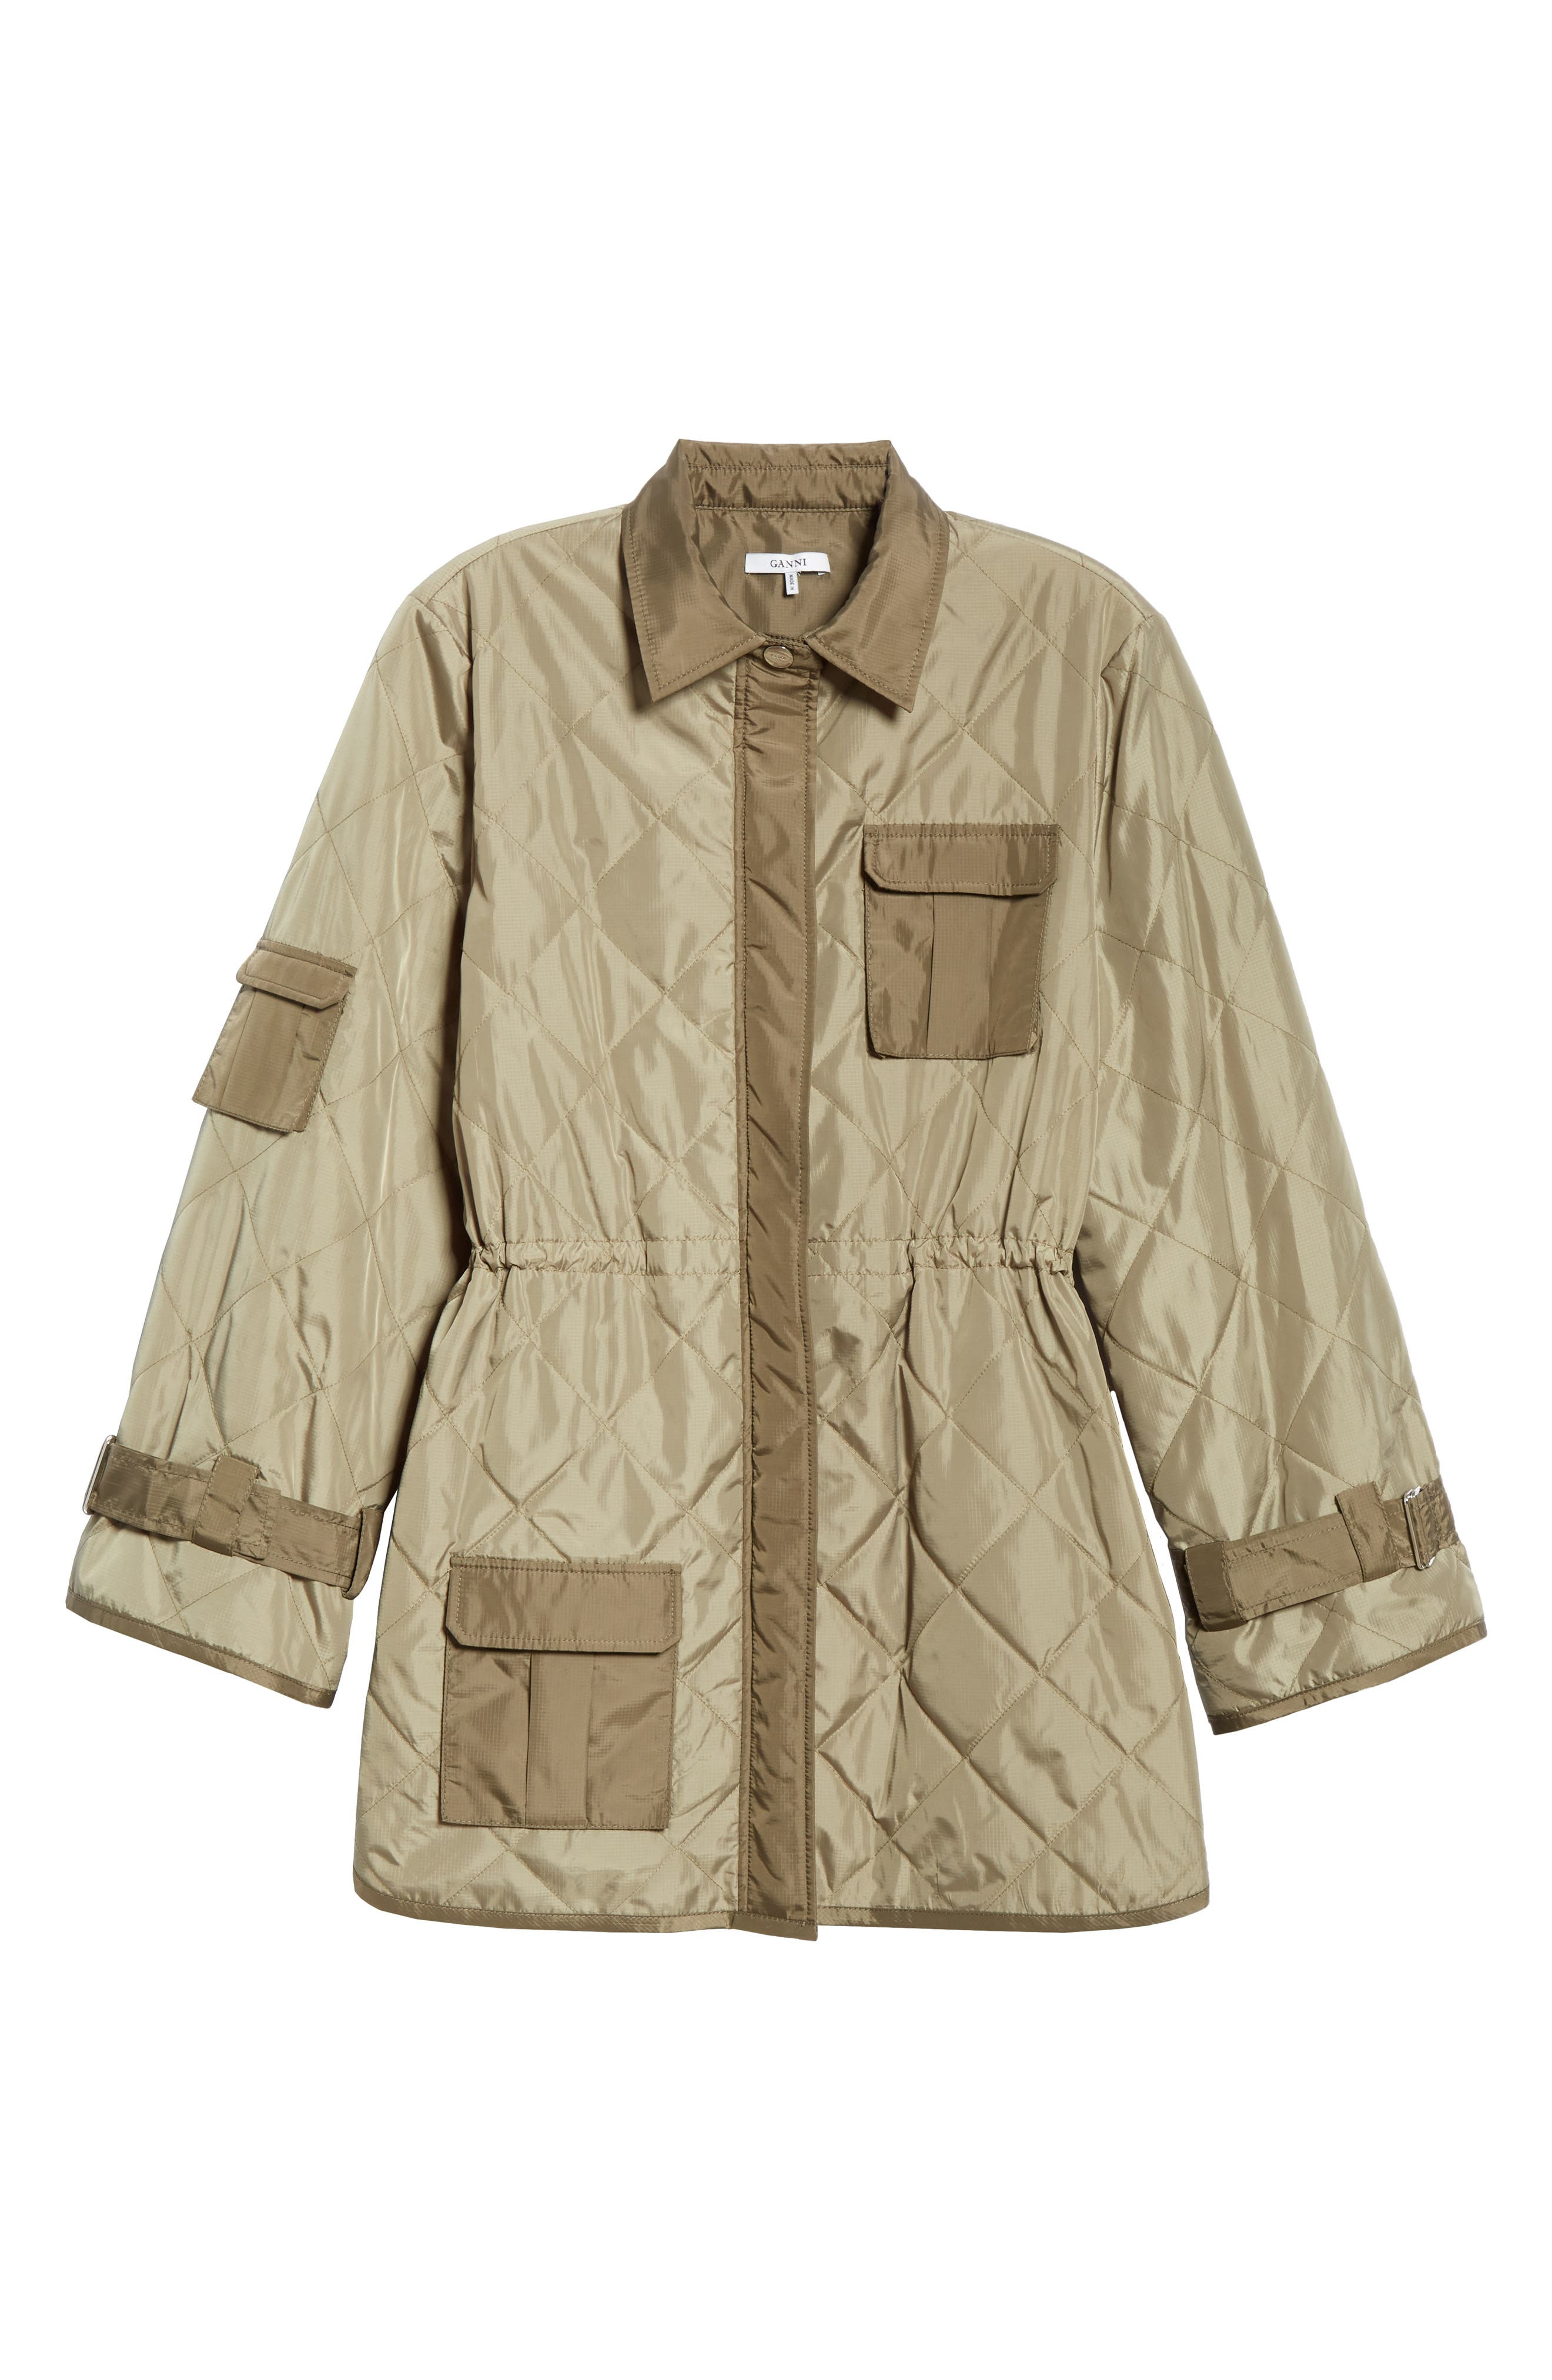 GANNI, Quilted Ripstop Jacket, Alternate thumbnail 5, color, ALOE